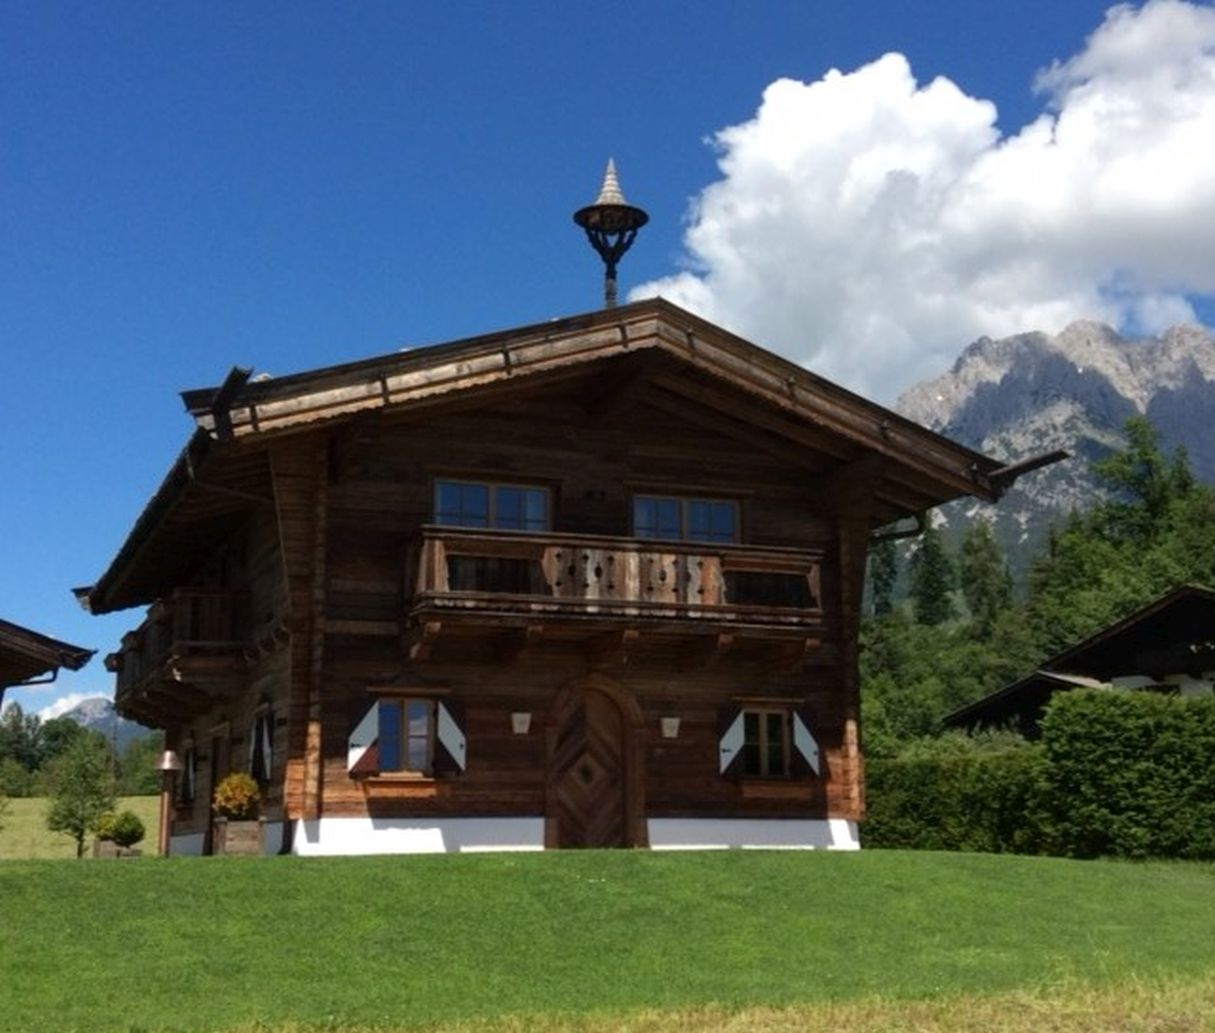 Tiroler Chalet in Going, dem Bergdoktordorf